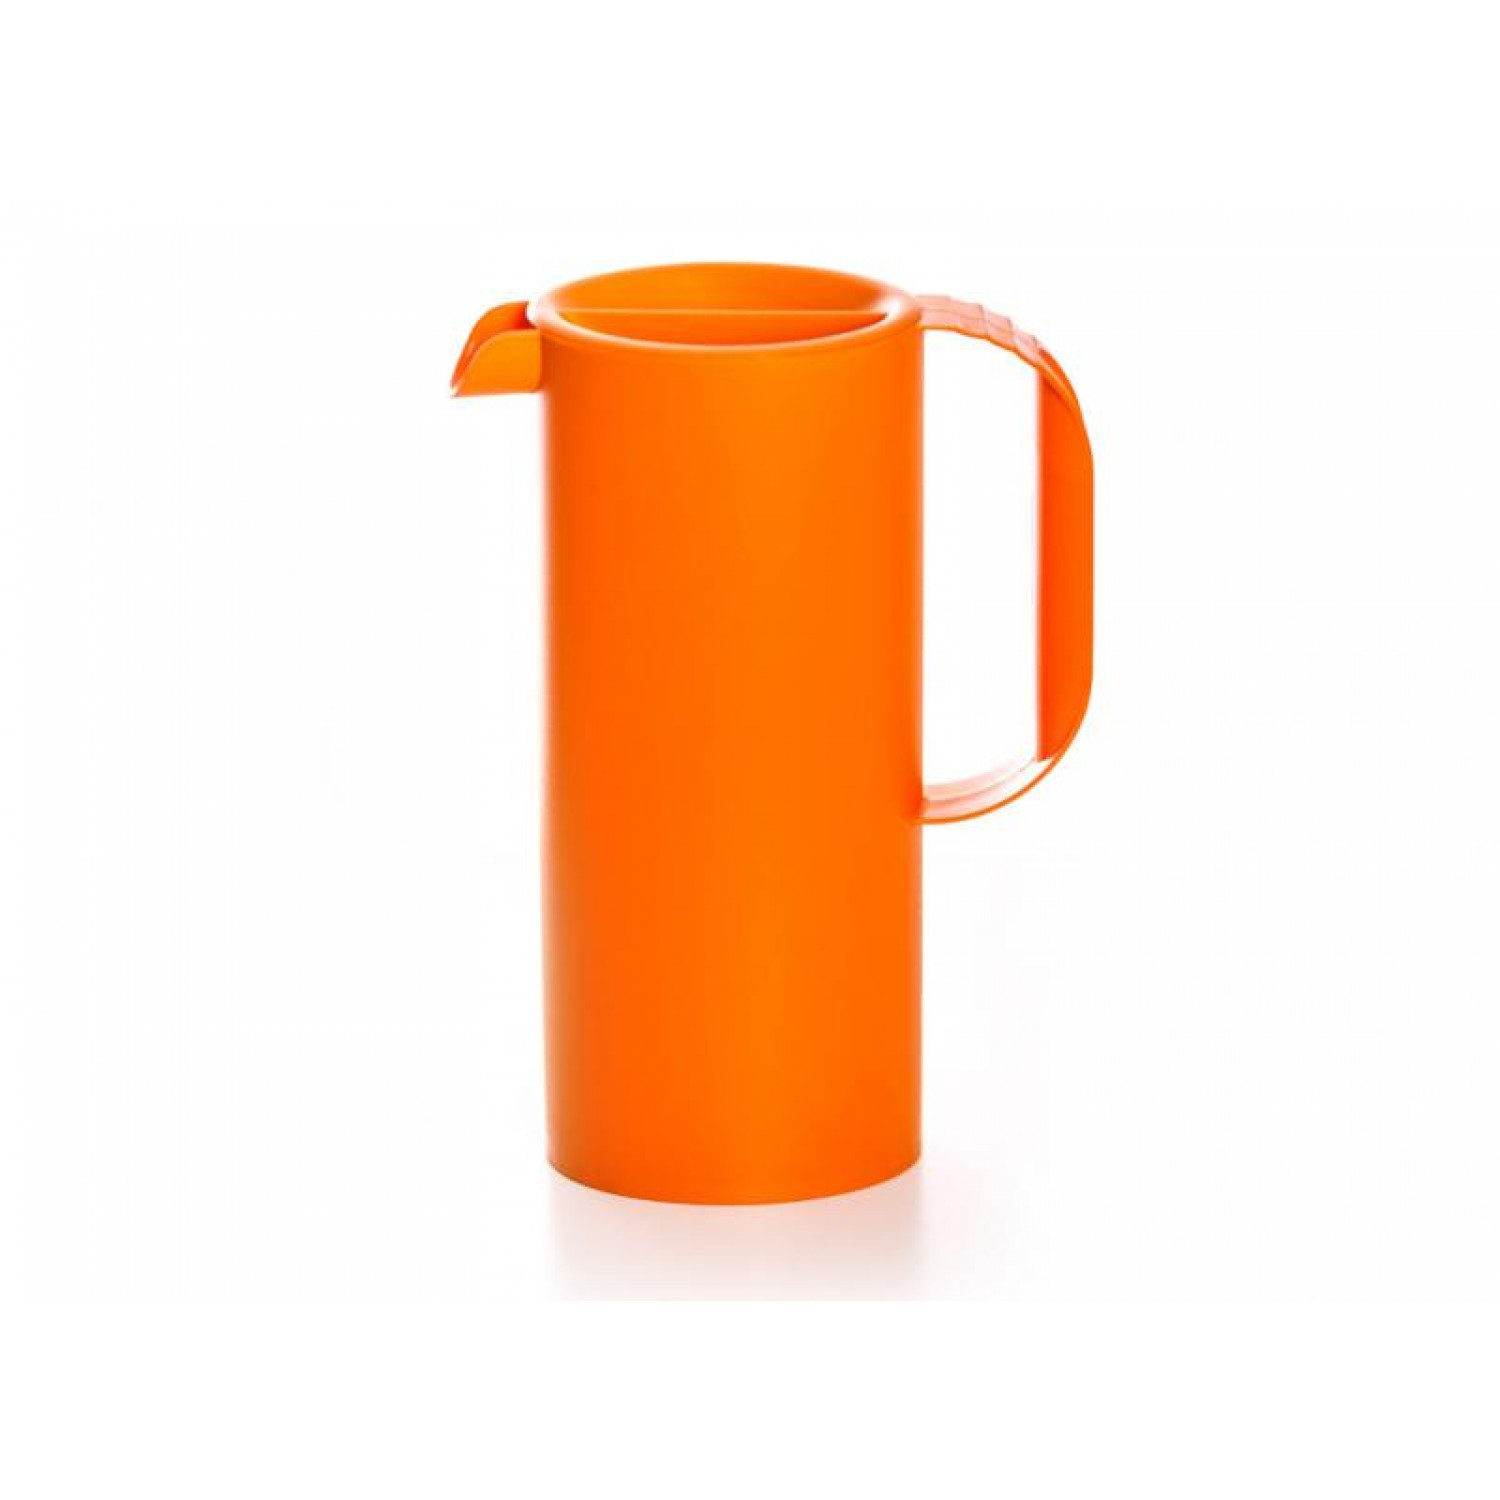 Elegant design juice jug made from bioplastics in orange